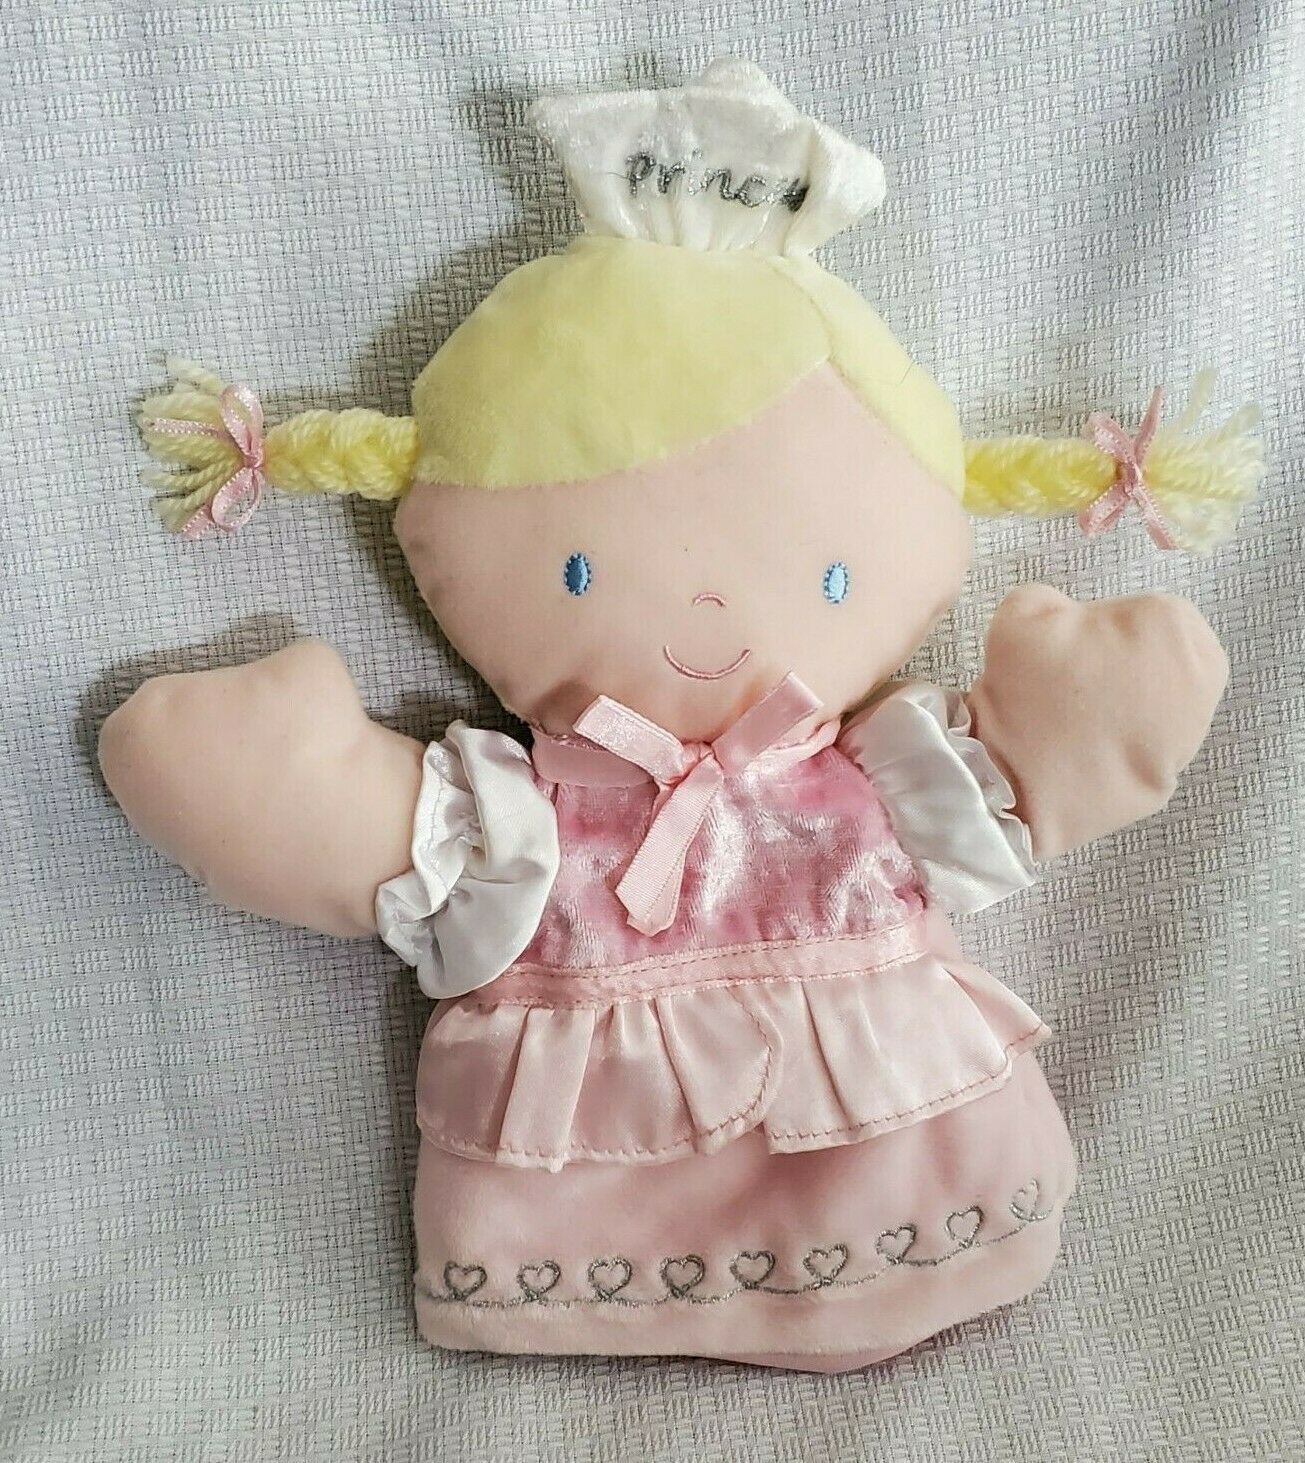 Carters Princess Girl Hand Puppet Blonde Yellow Yarn Hair Pink Satin Dress Toy - $24.74